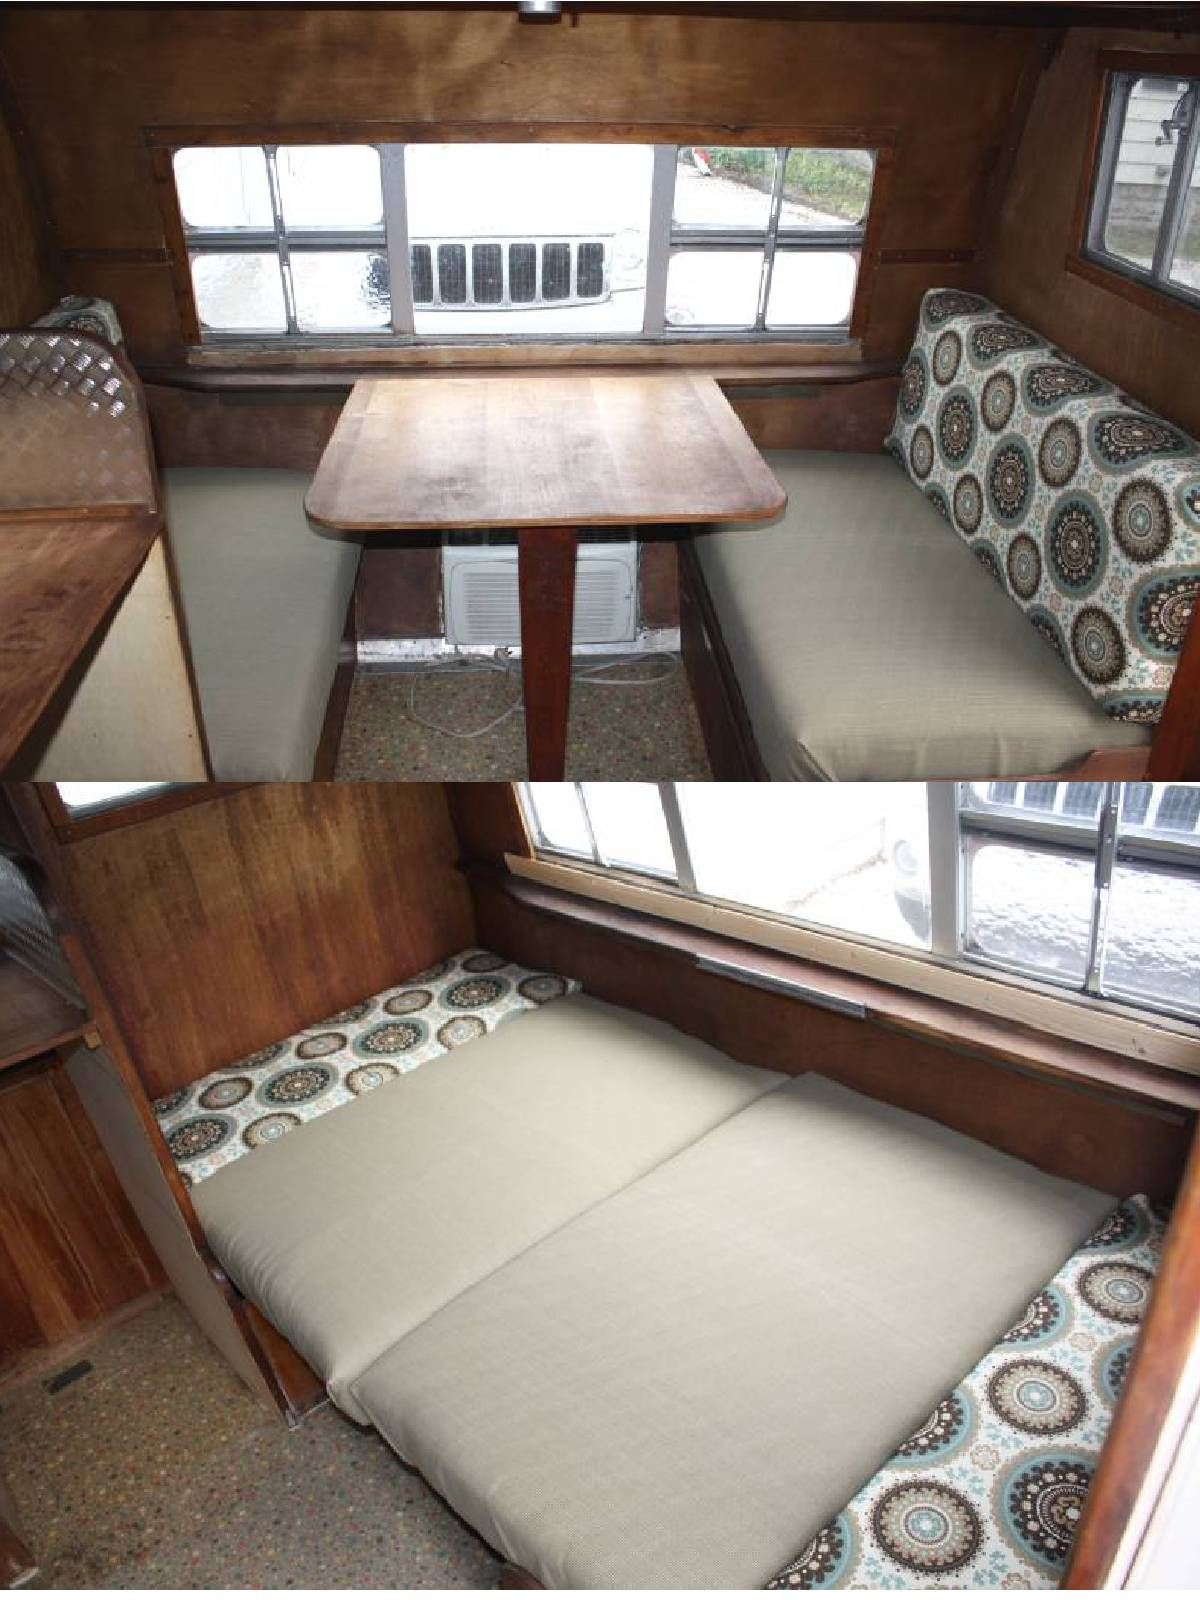 Retro camper curtains - How To Make Easy Vintage Trailer Dinette Cushions Step By Step Pics Great For Our Pop Up